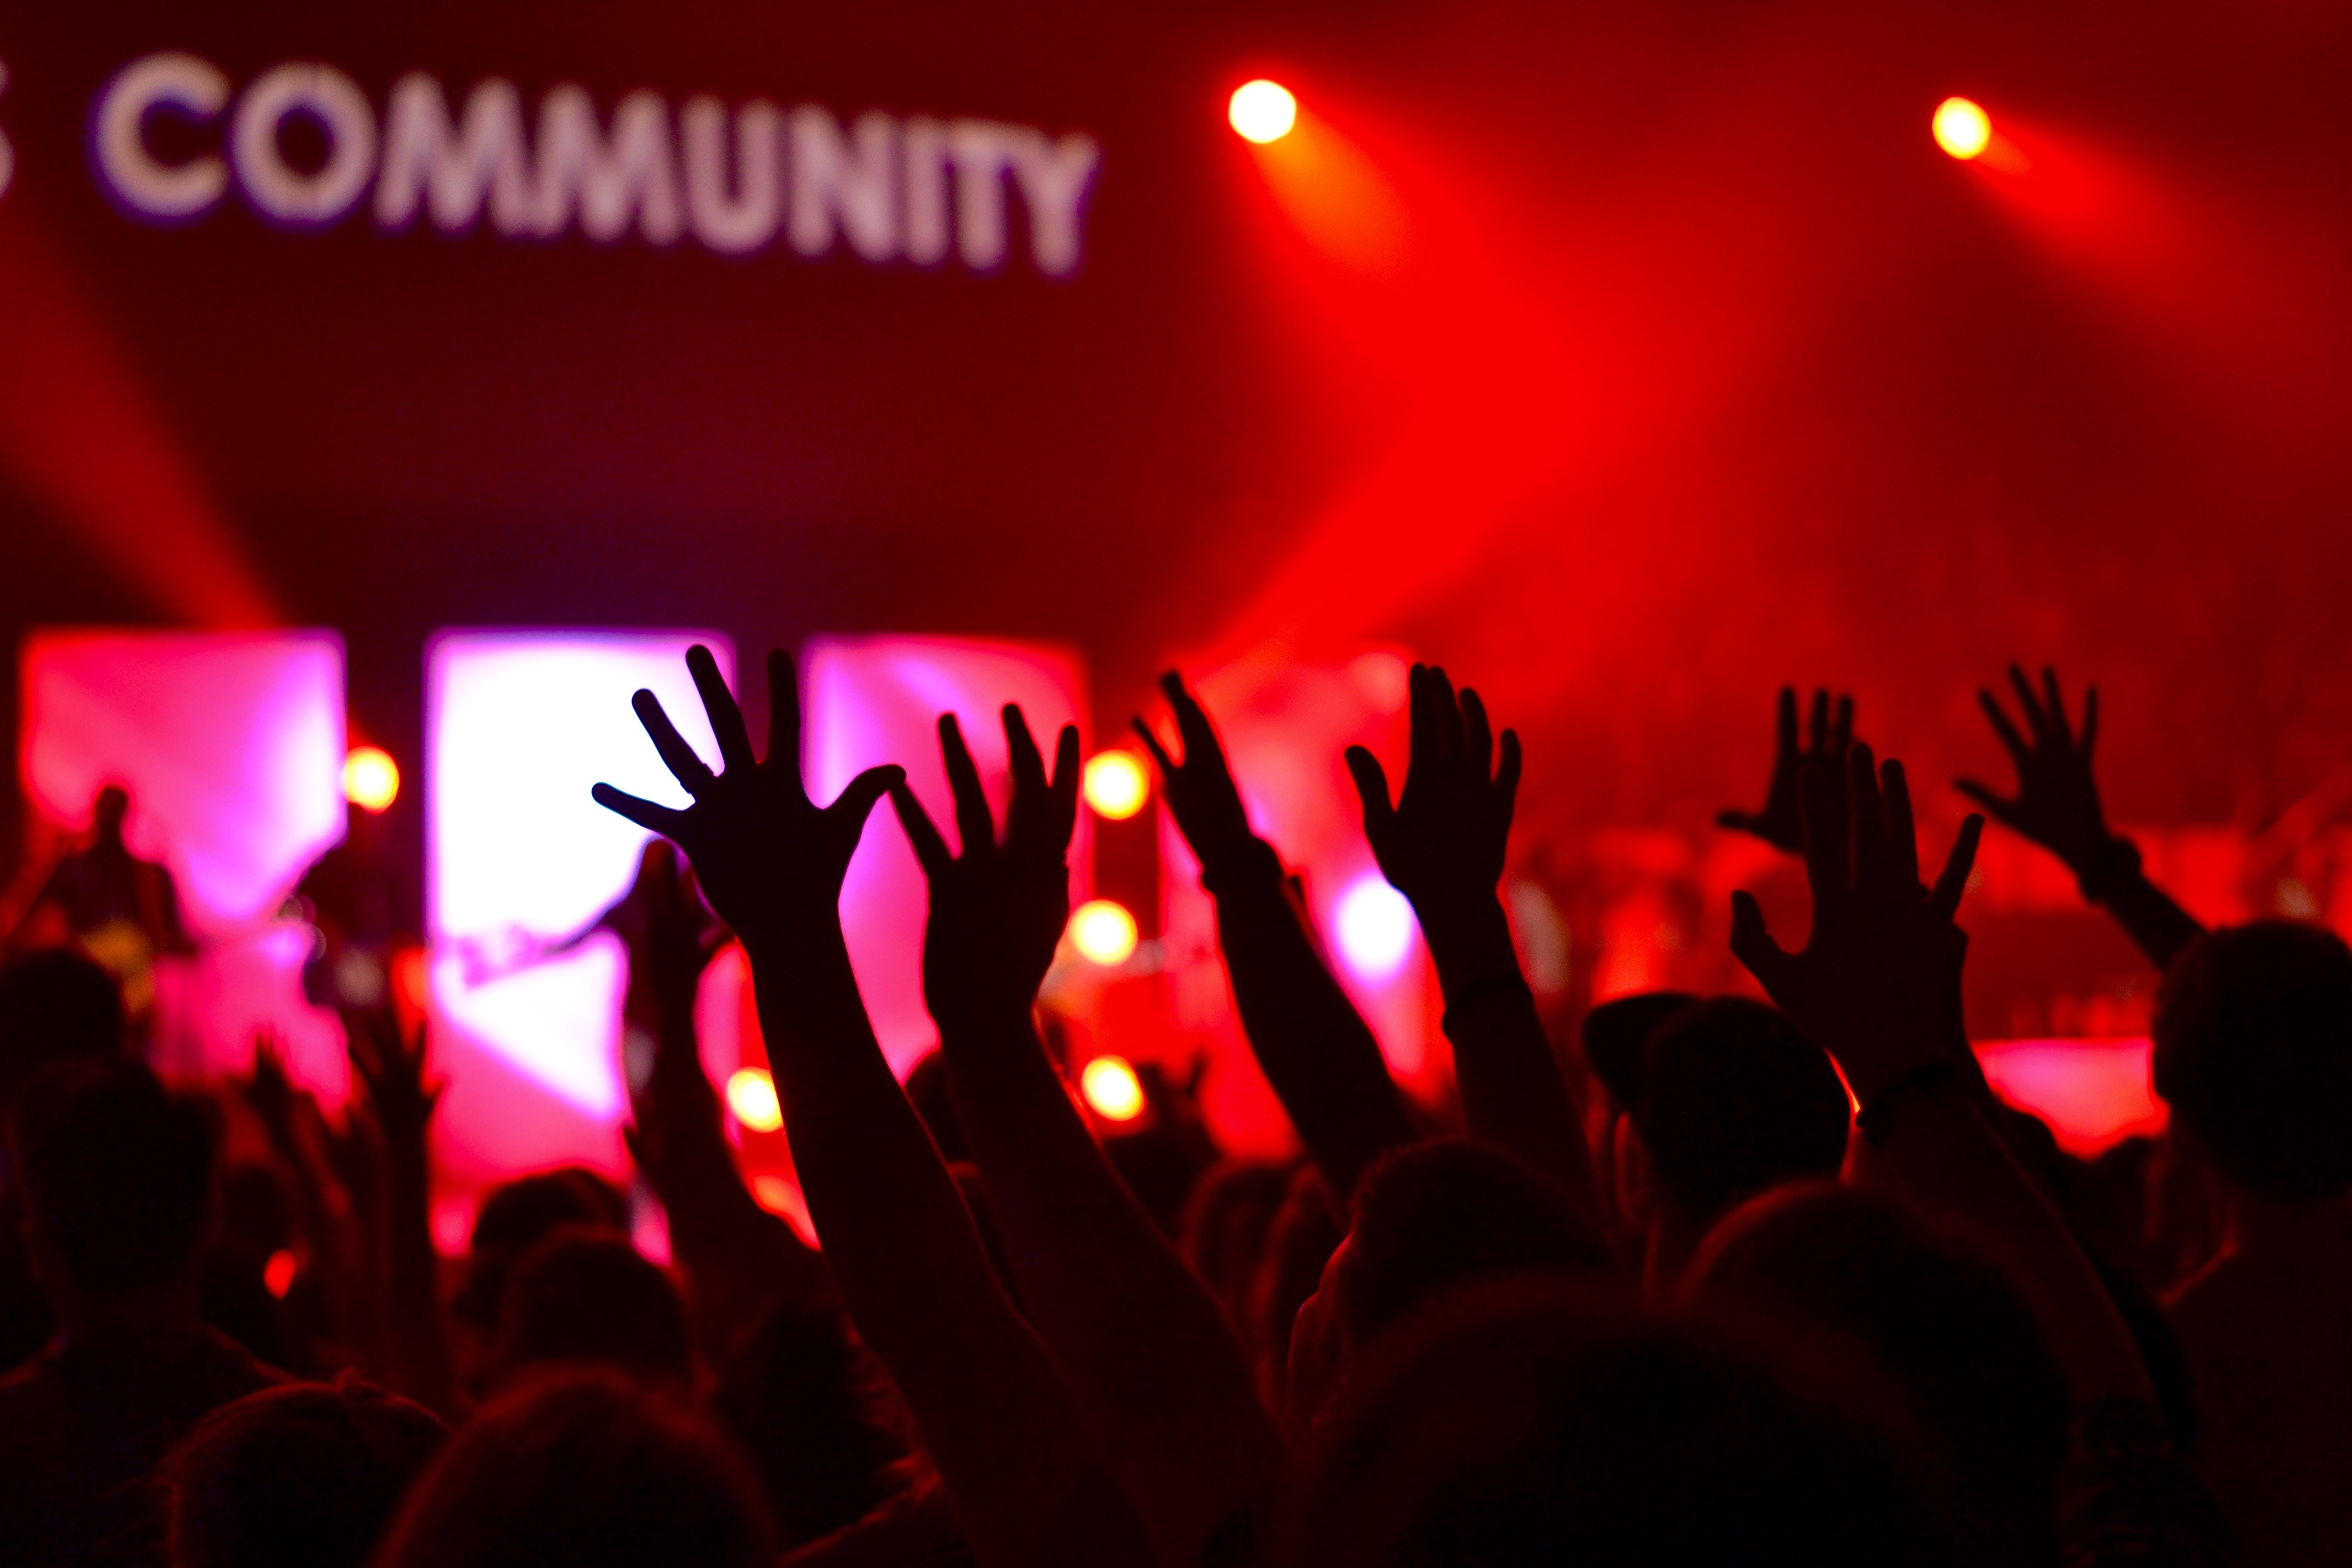 hands in the air at event with the word 'community' lit up